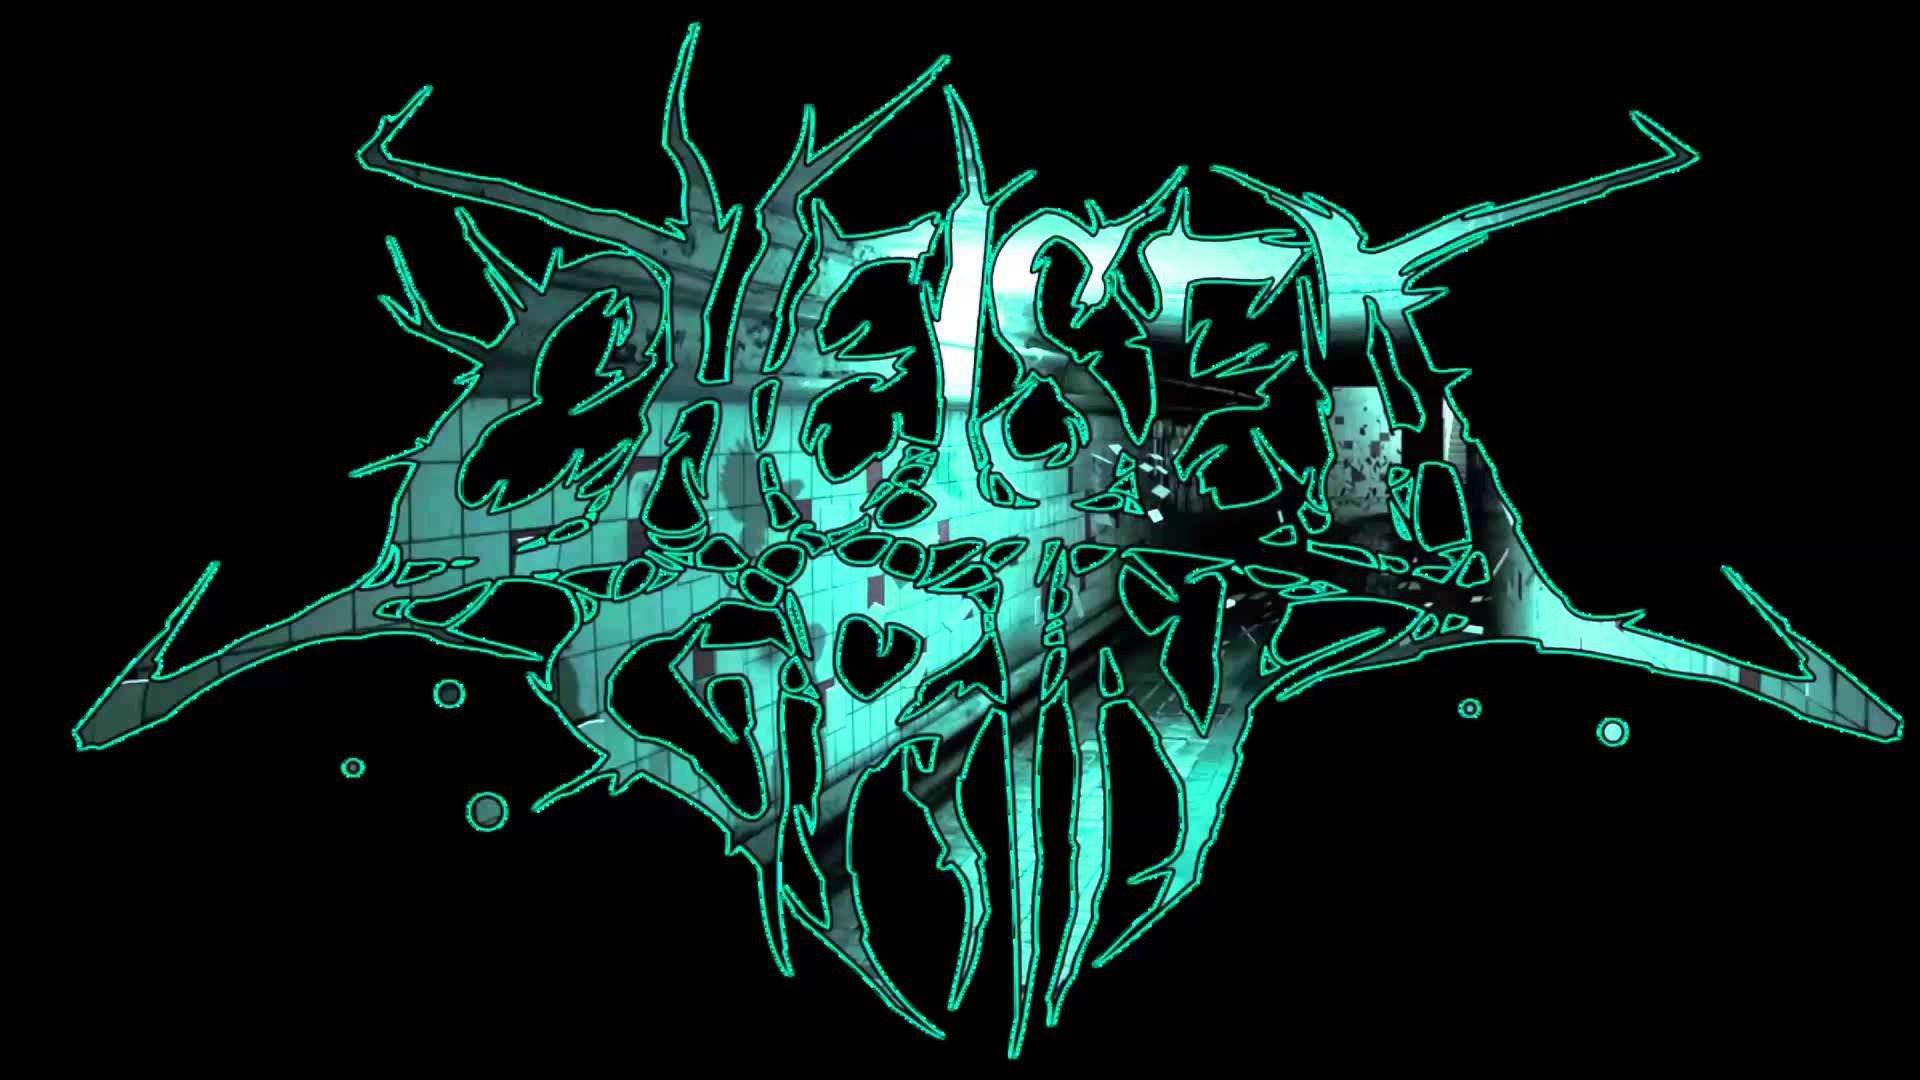 Chelsea Grin Wallpapers Top Free Chelsea Grin Backgrounds